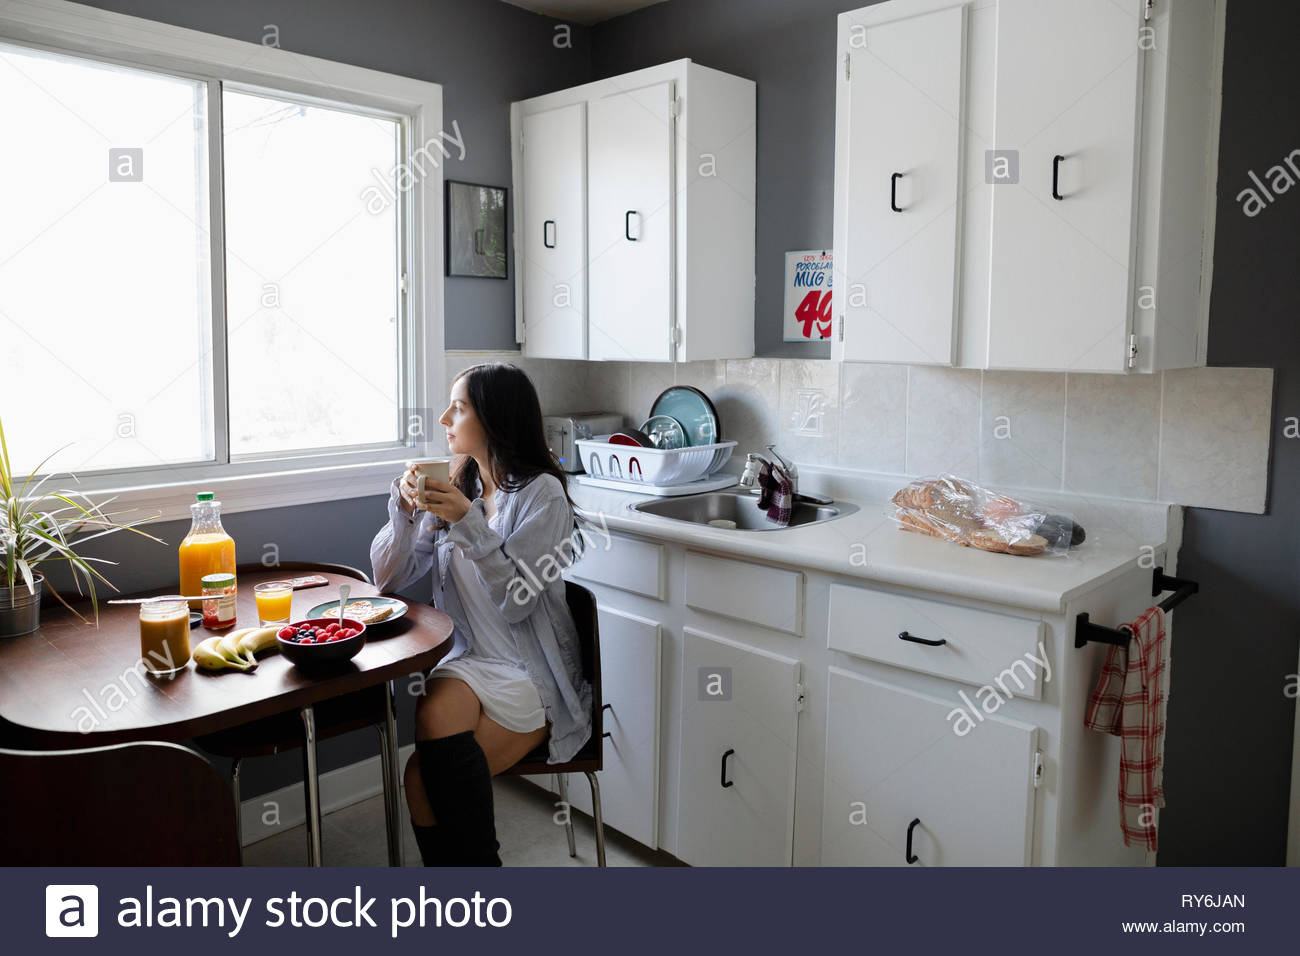 Thoughtful young Latinx woman enjoying breakfast, looking out kitchen window - Stock Image